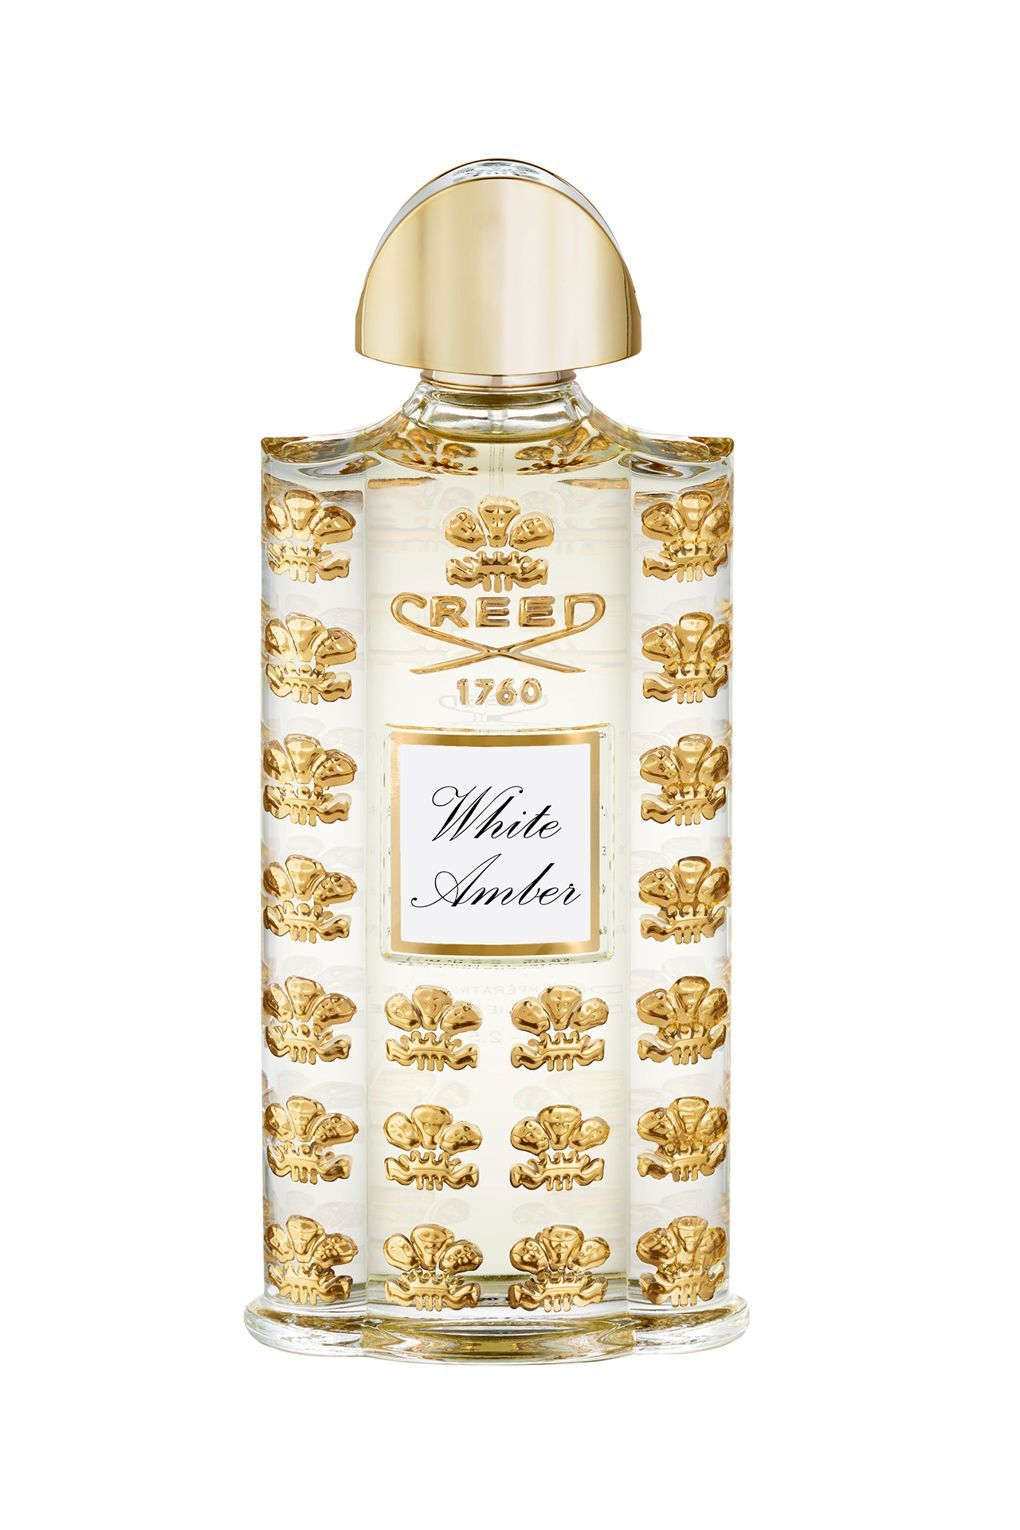 The Best Gold Items To Buy Right Now Creed White Amber Fragrance